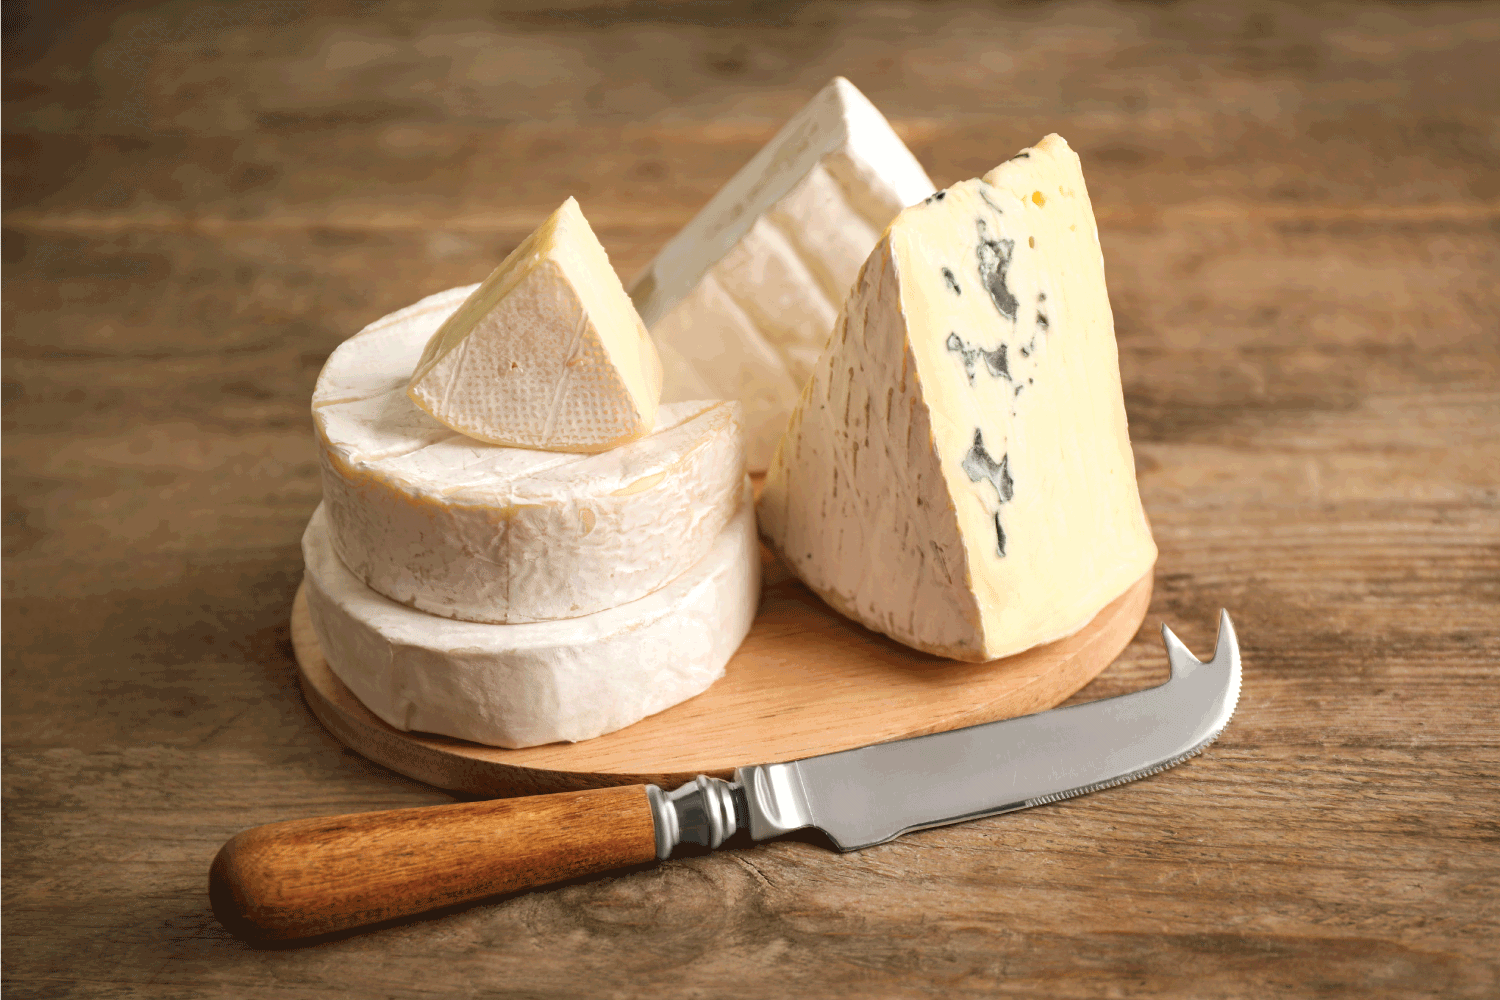 Different types of cheese and knife on wooden table with pronged cheese knife